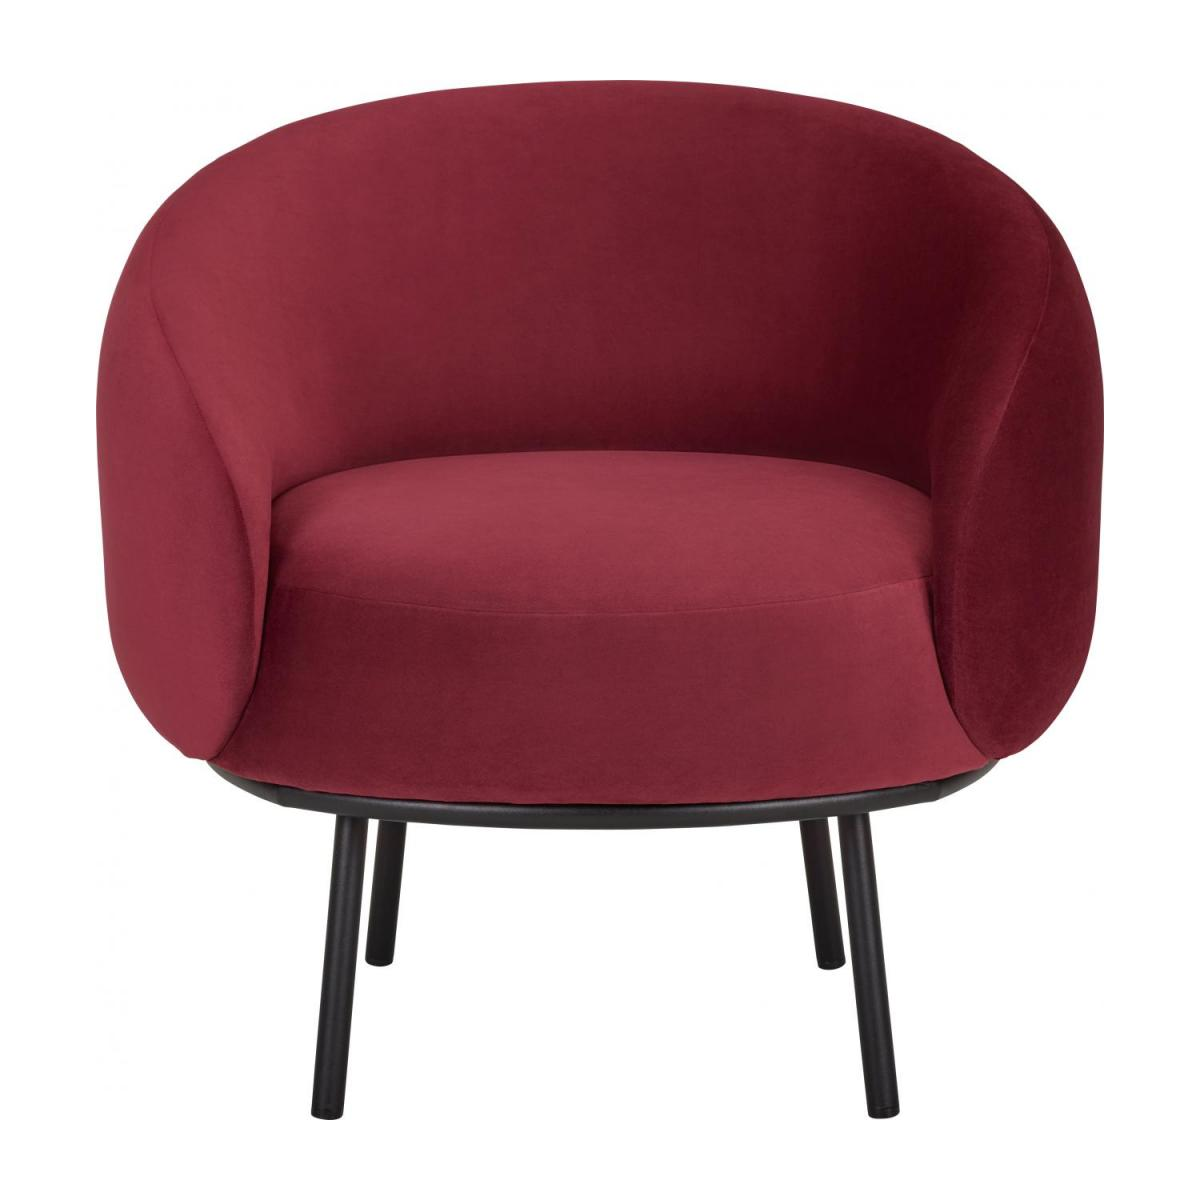 Fauteuil en velours - Lie-de-vin  - Design by Adrien Carvès n°3